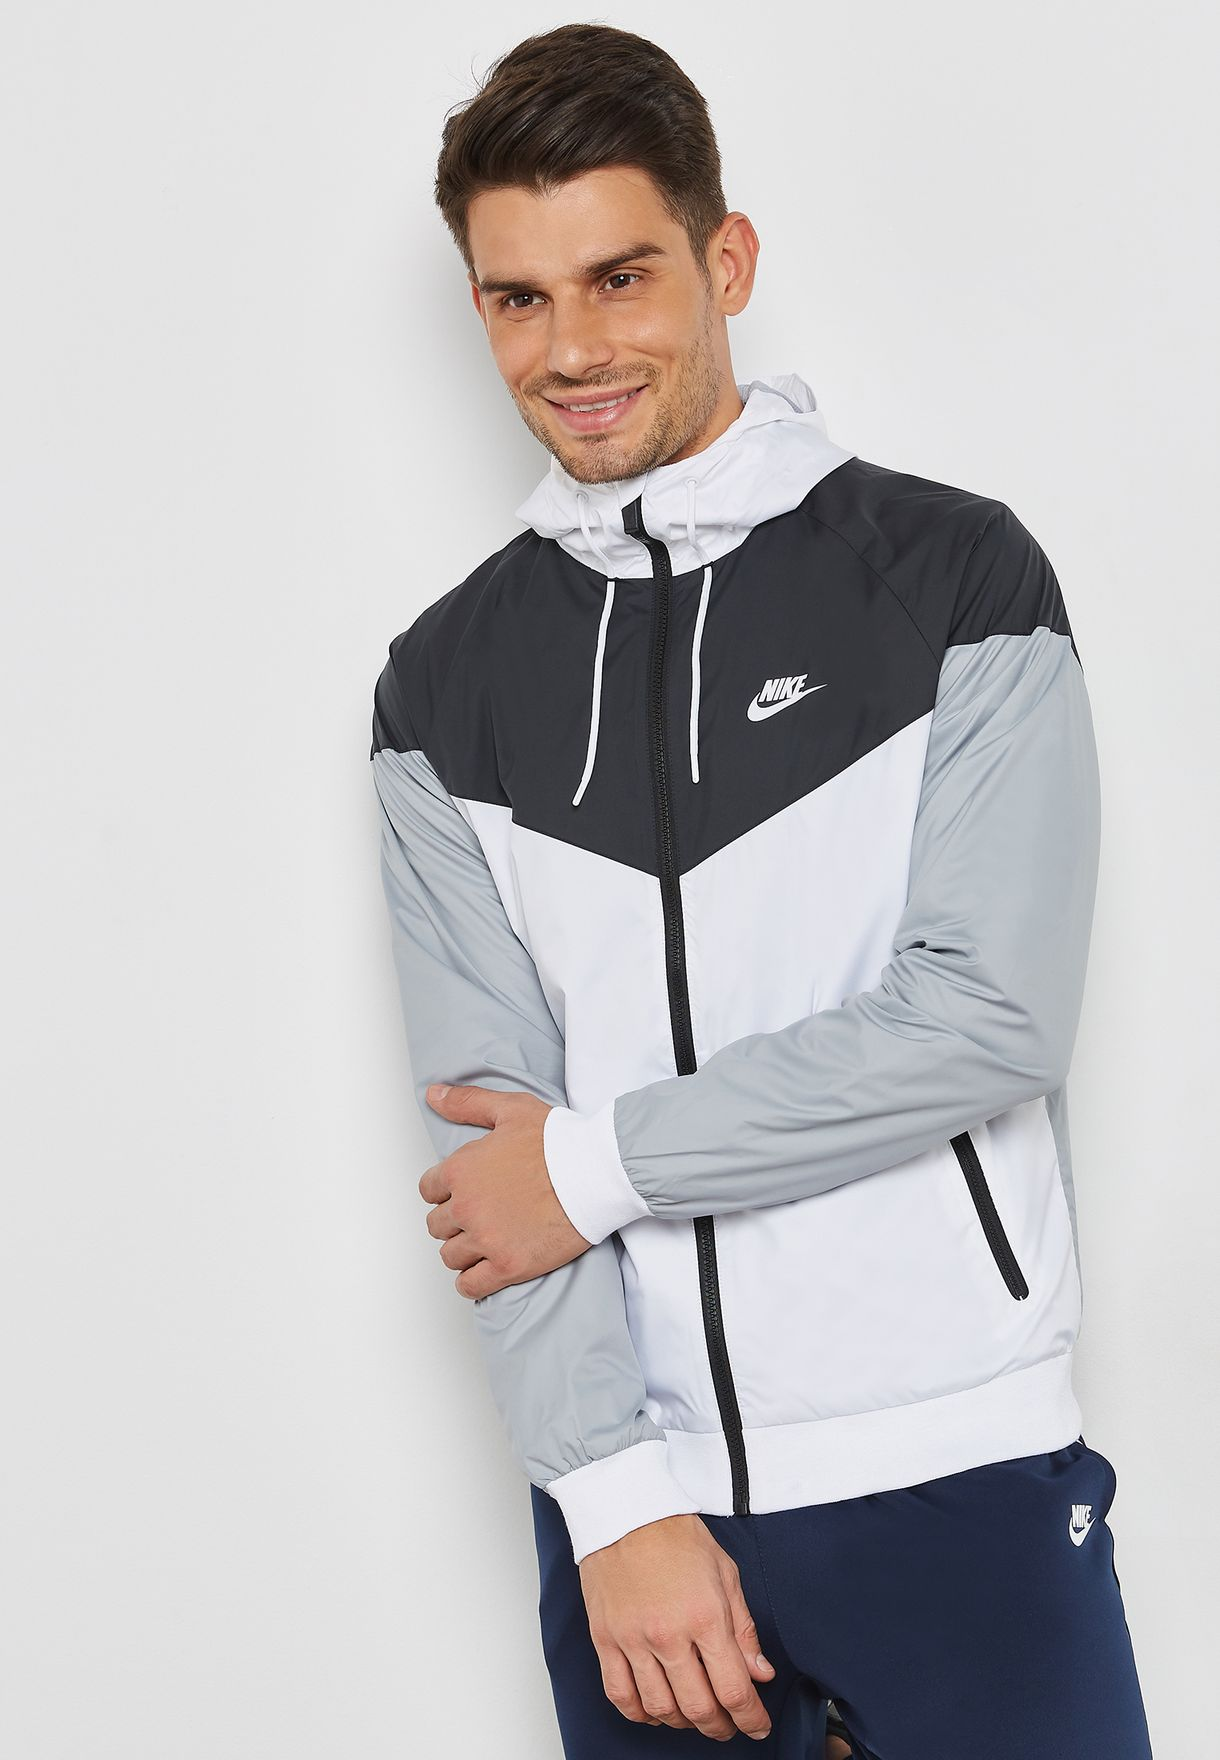 bc66056f14 Shop Nike multicolor NSW Windrunner Jacket 727324-101 for Men in ...